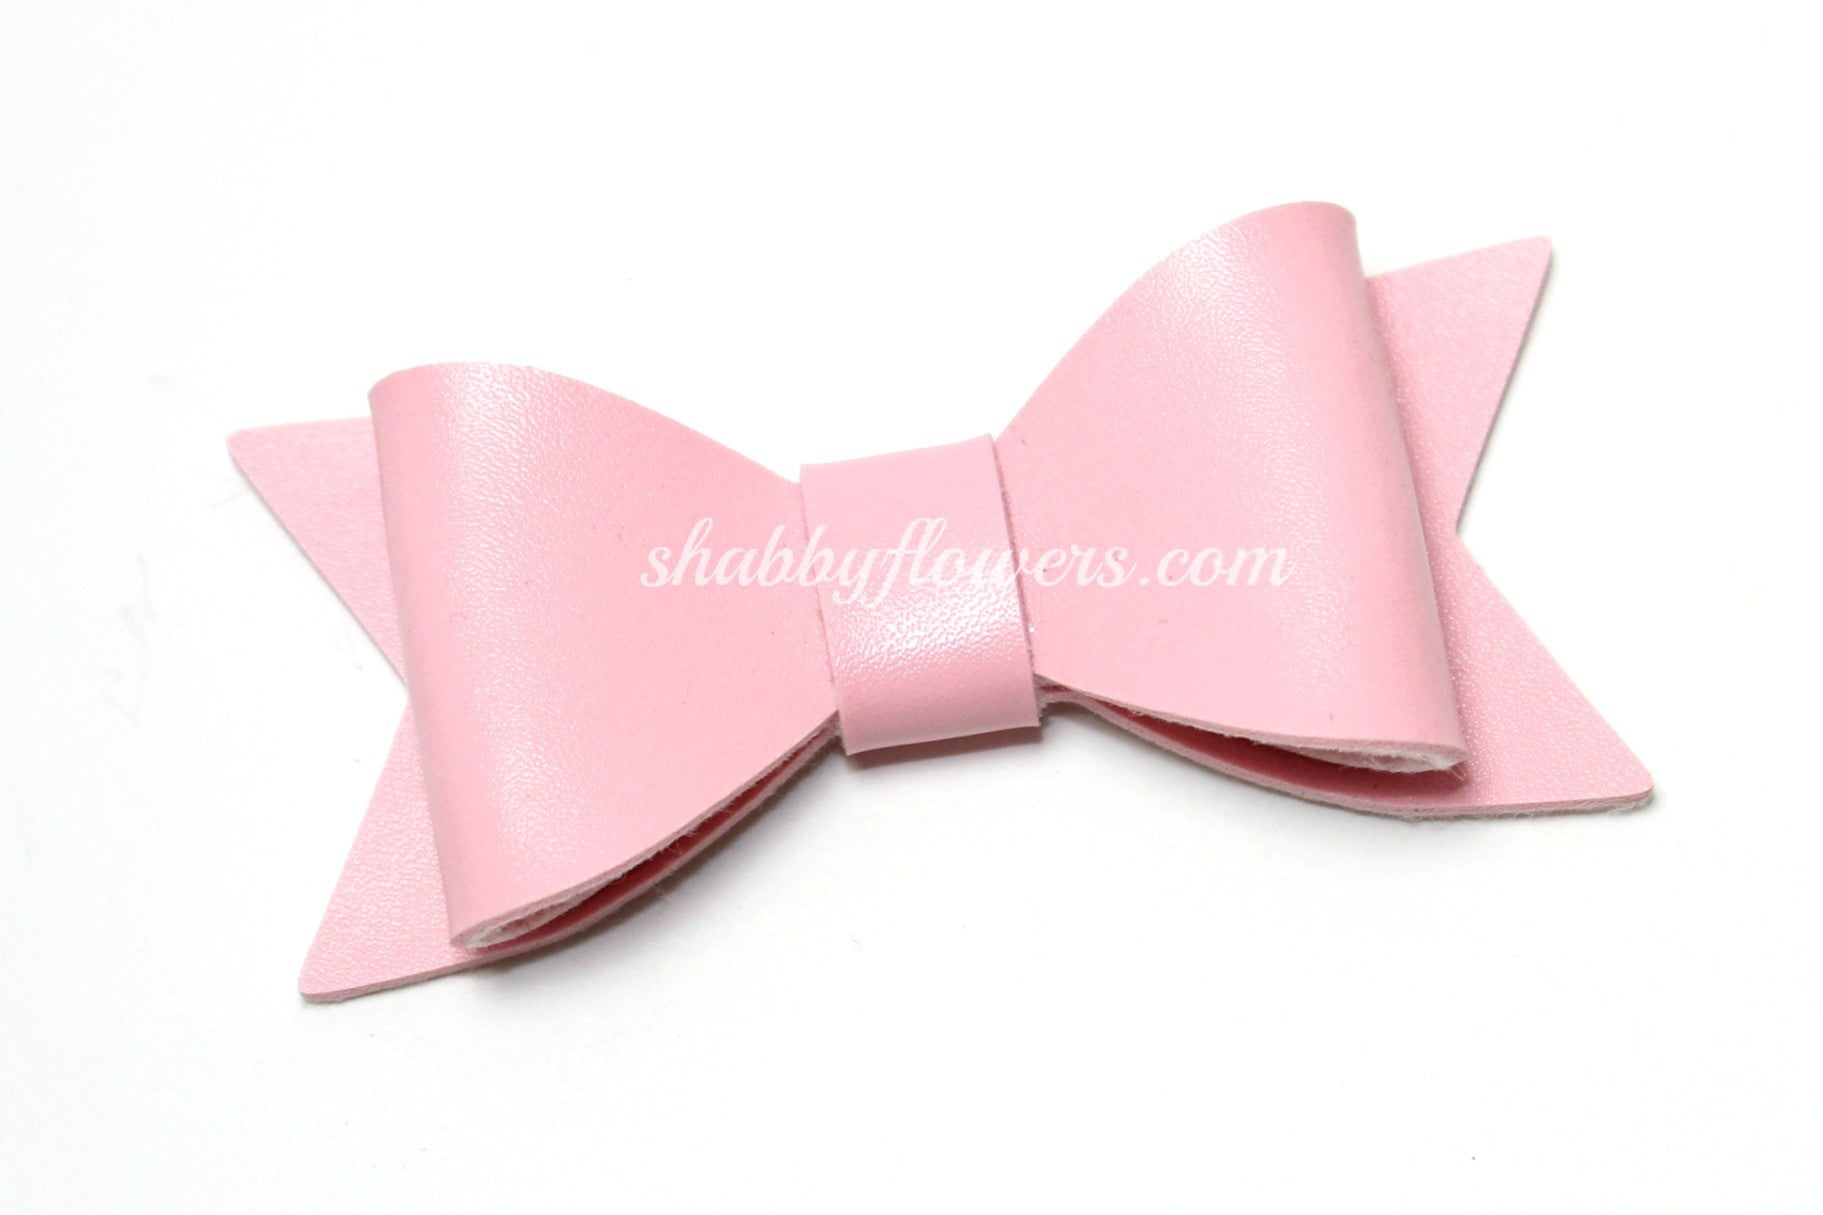 Faux Leather Bow - Light Pink - shabbyflowers.com